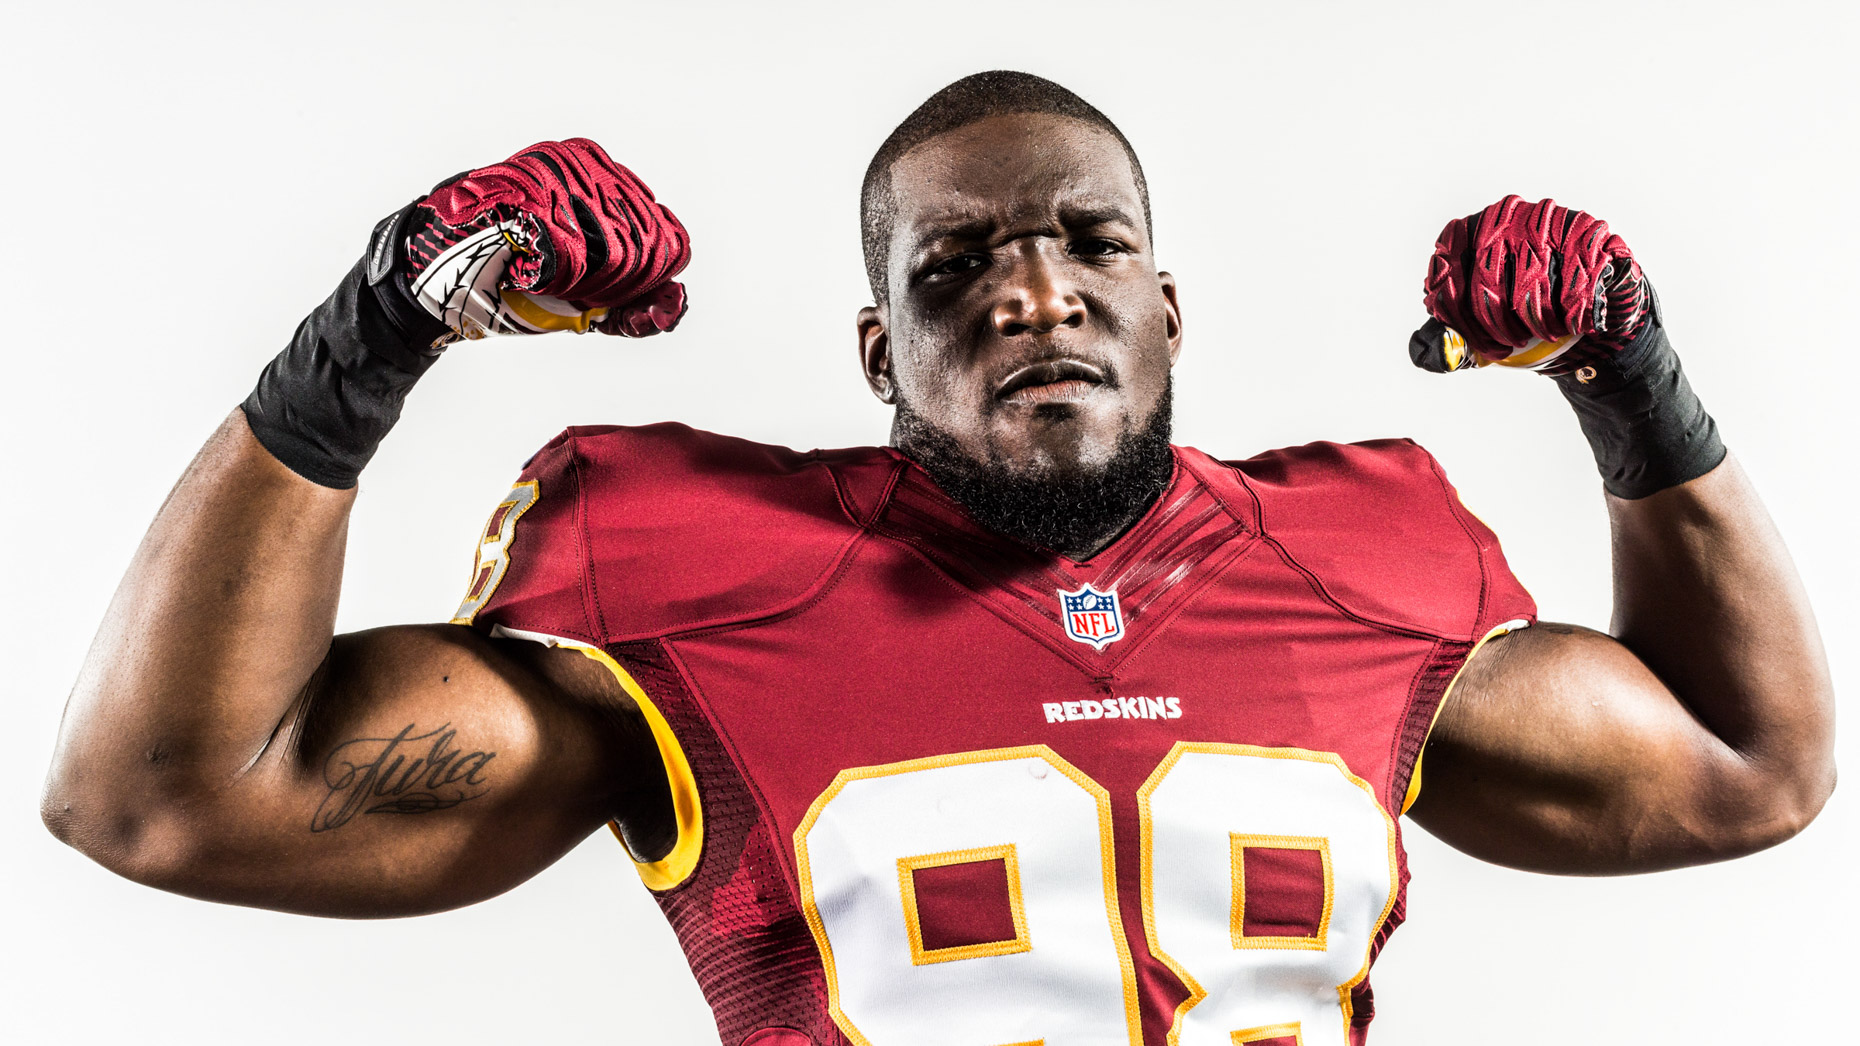 NFL football player Brian Orakpo photographed by sport shooter Andy Batt